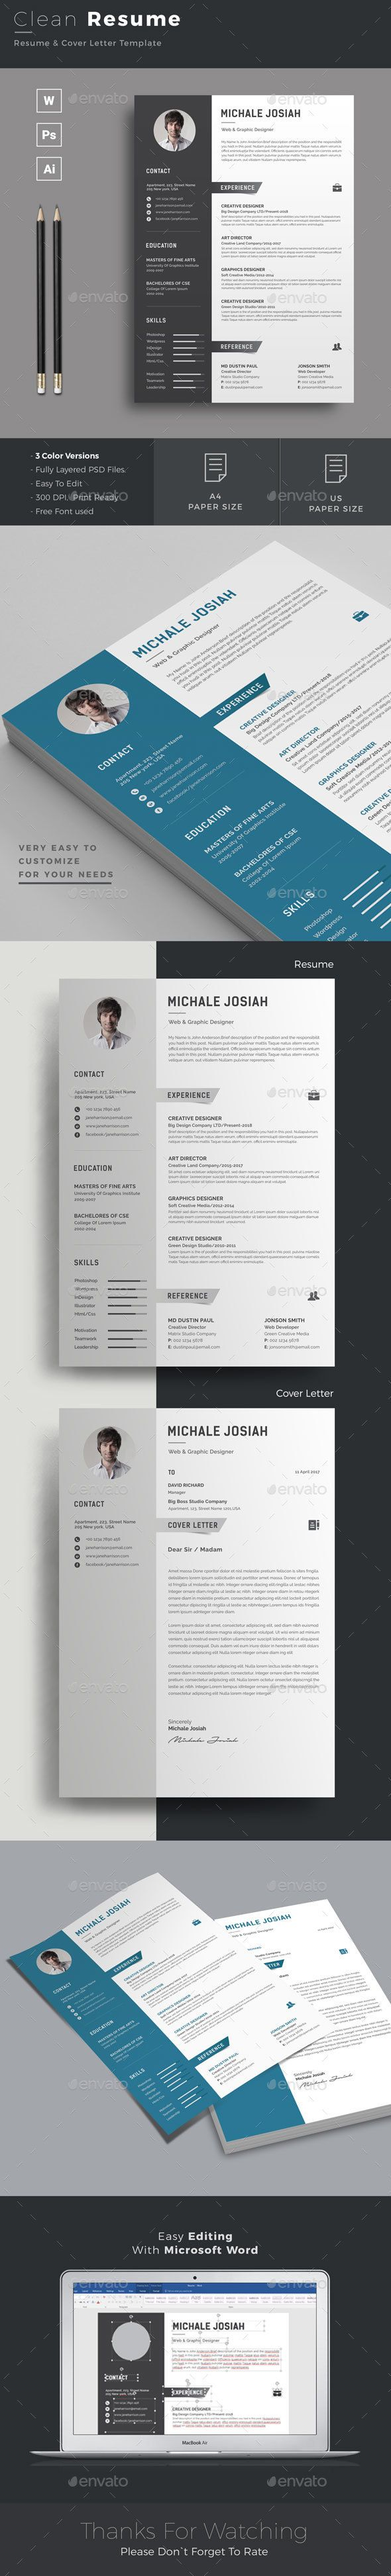 making resume format%0A  Resume  Resumes Stationery Download here  https   graphicriver net